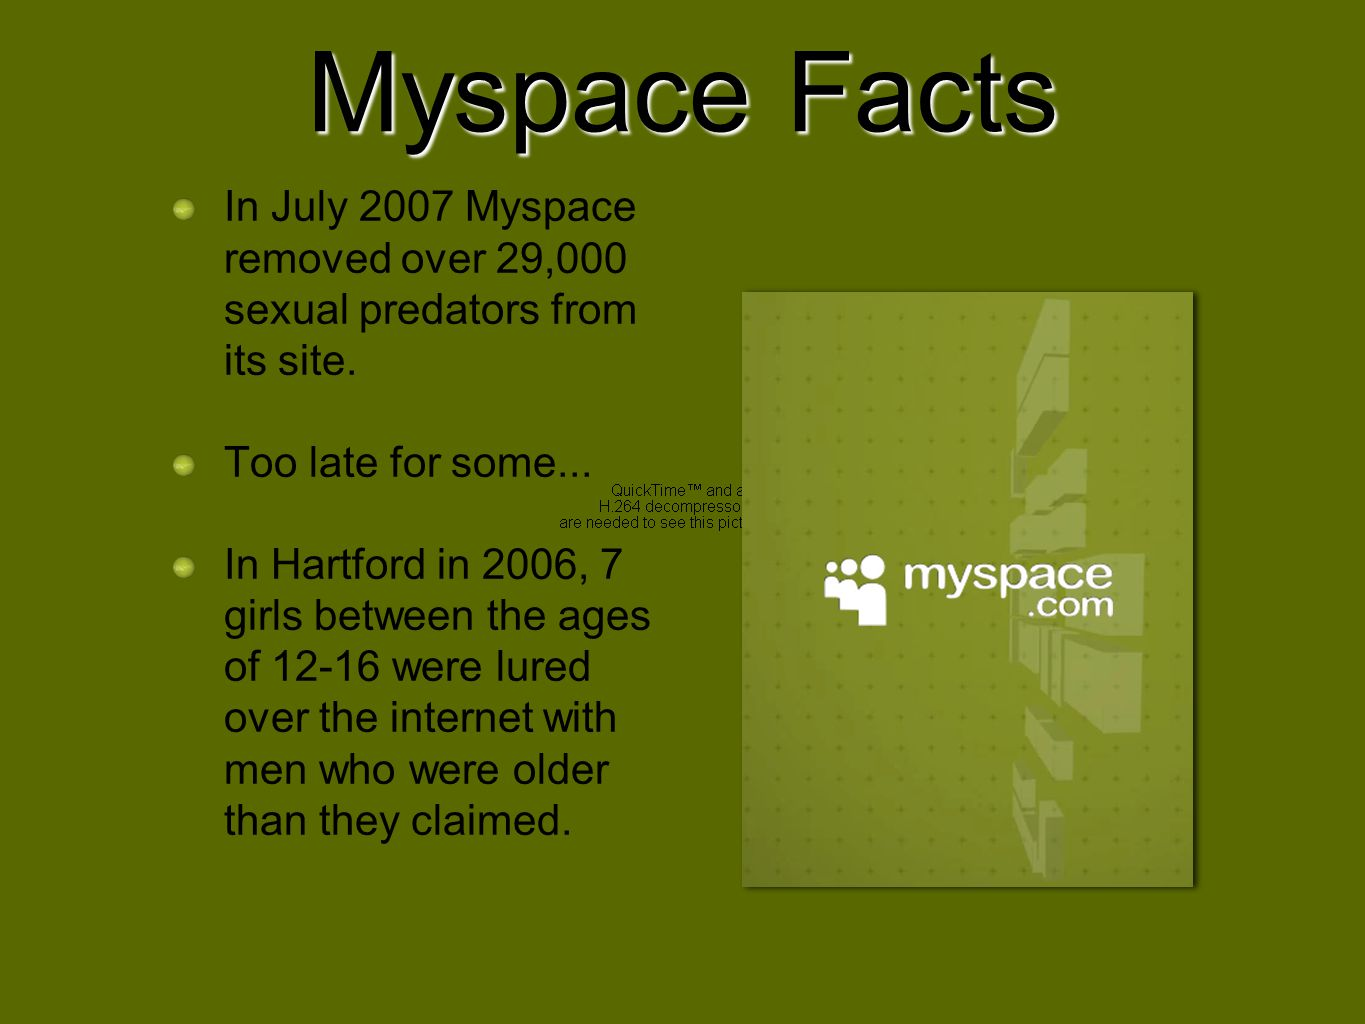 Myspace Facts In July 2007 Myspace removed over 29,000 sexual predators from its site. Too late for some...